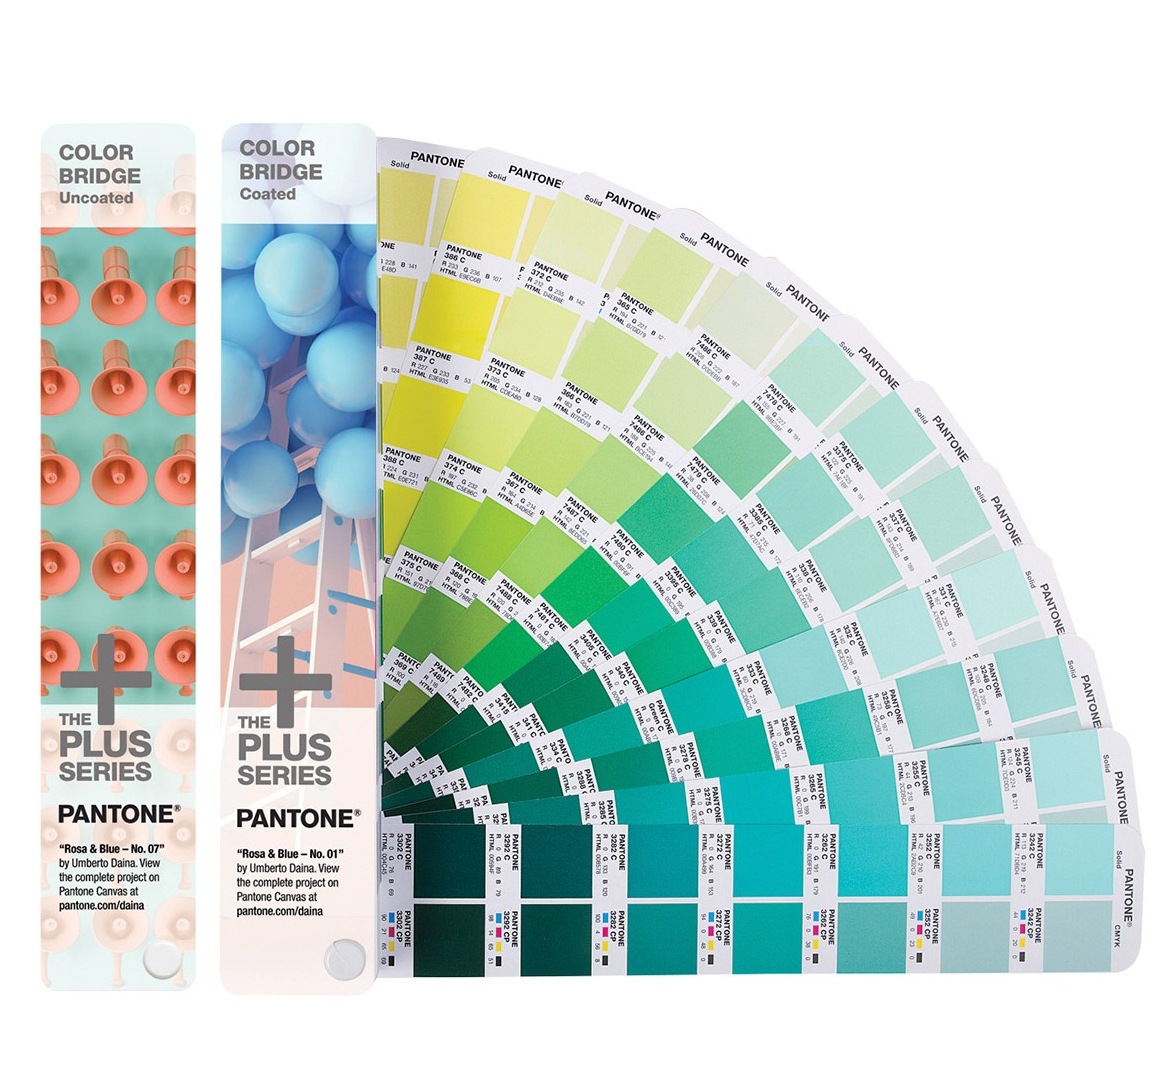 PANTONE-Color-Bridge-Coated-&-Uncoated-Set GP6102N